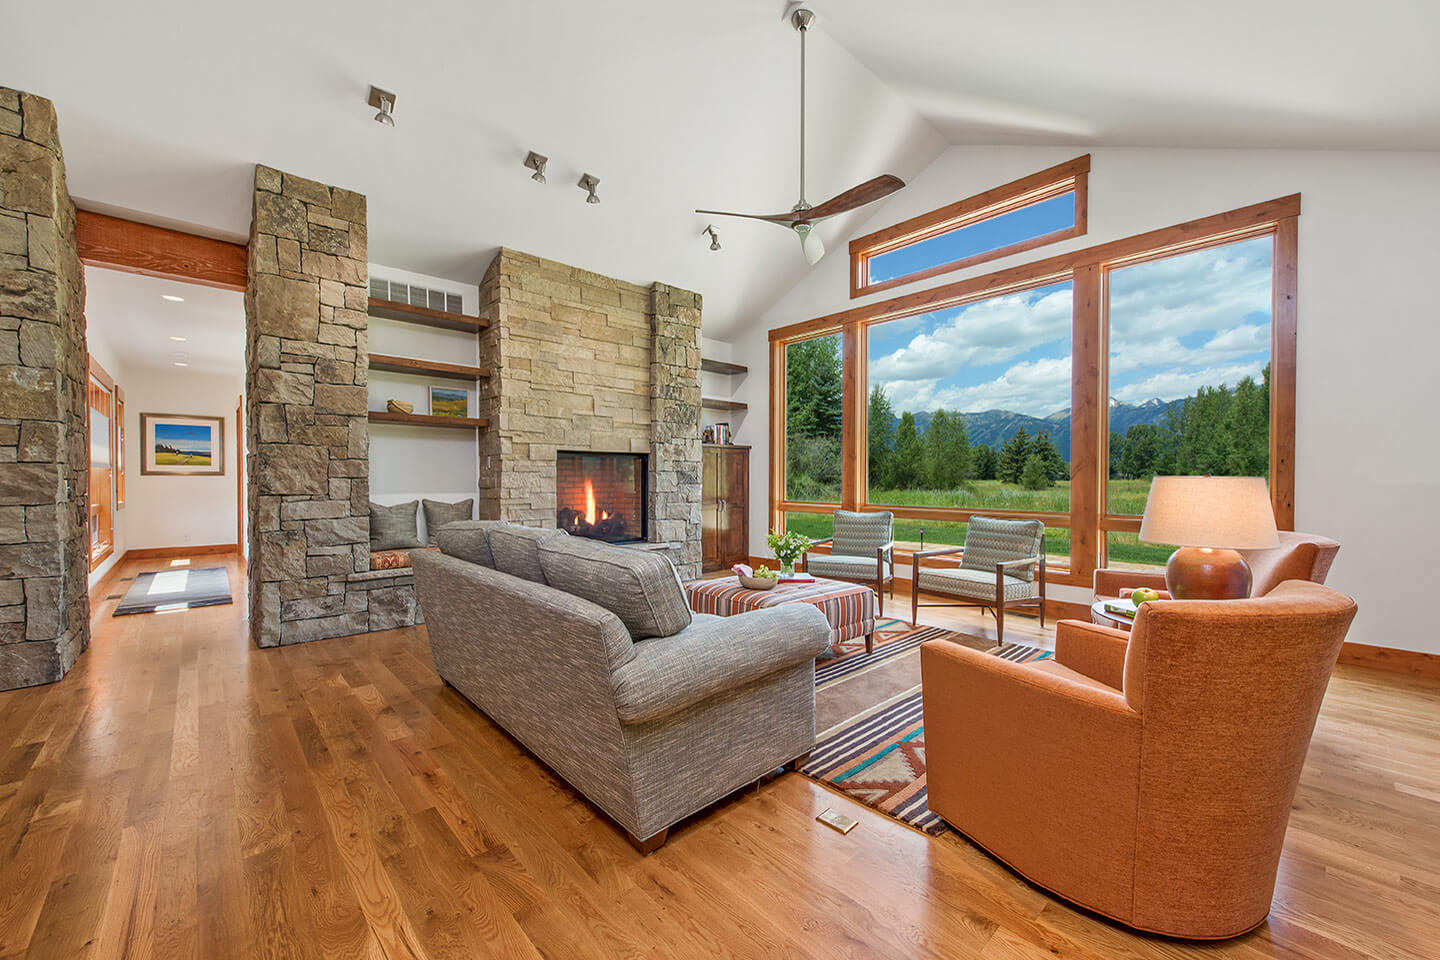 Living room with native stone fireplace and wood flooring